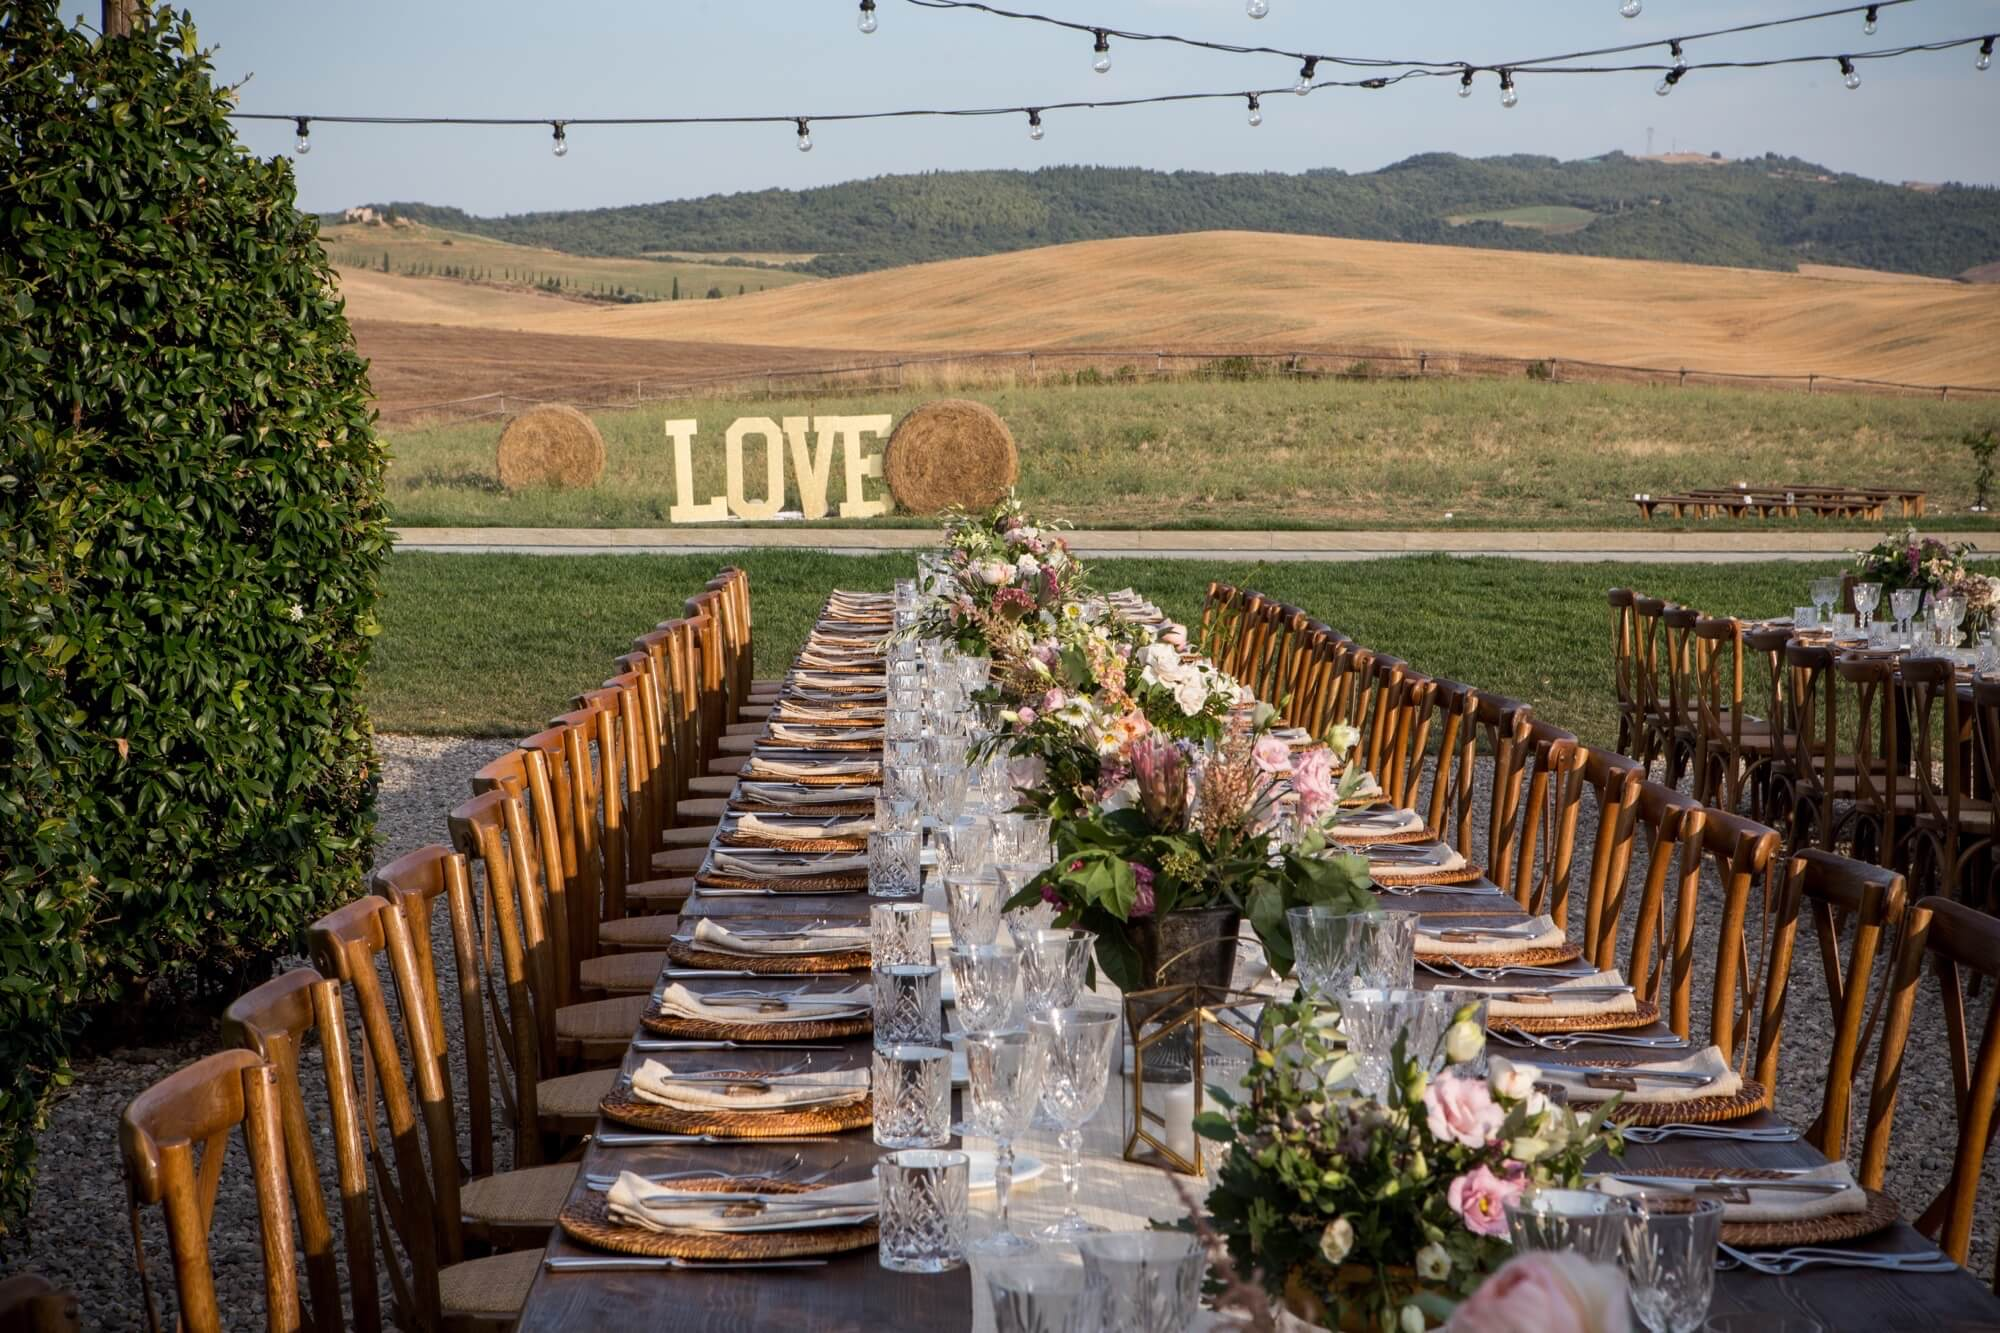 Castles and luxury villas for your wedding in Val d'Orcia, Florenze, Siena, Tuscany. Giulia Alessandri Wedding Planner, Wedding Design & Wedding Coordination in Tuscany.